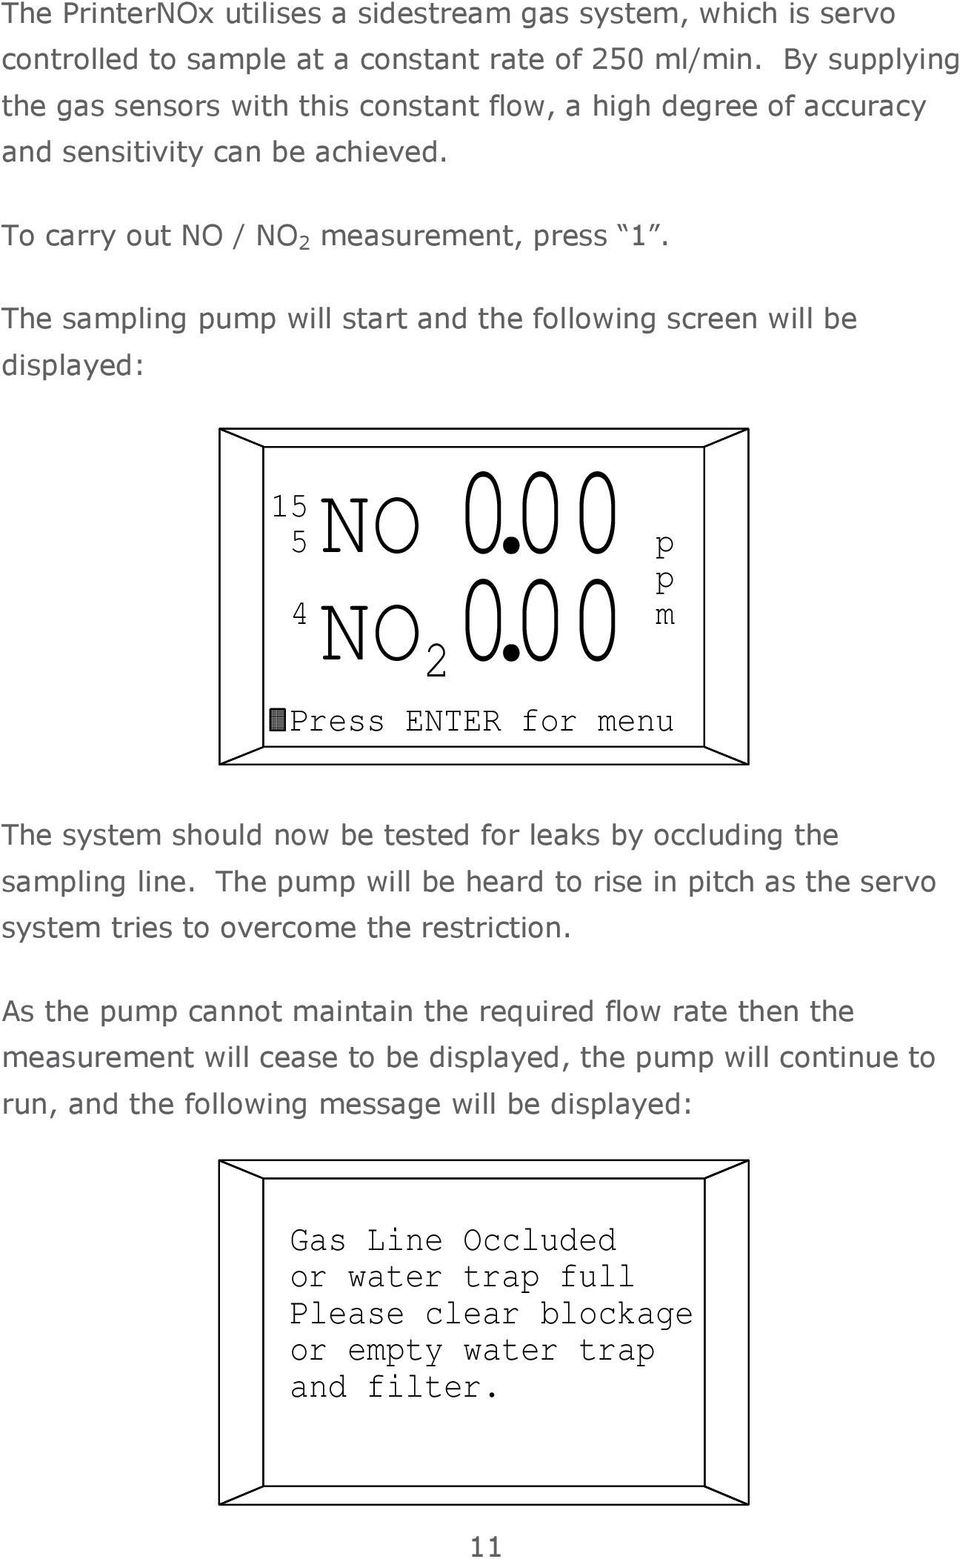 The sampling pump will start and the following screen will be displayed: NO NO 000. 2000. 15 5 p p 4 m Press ENTER for menu The system should now be tested for leaks by occluding the sampling line.